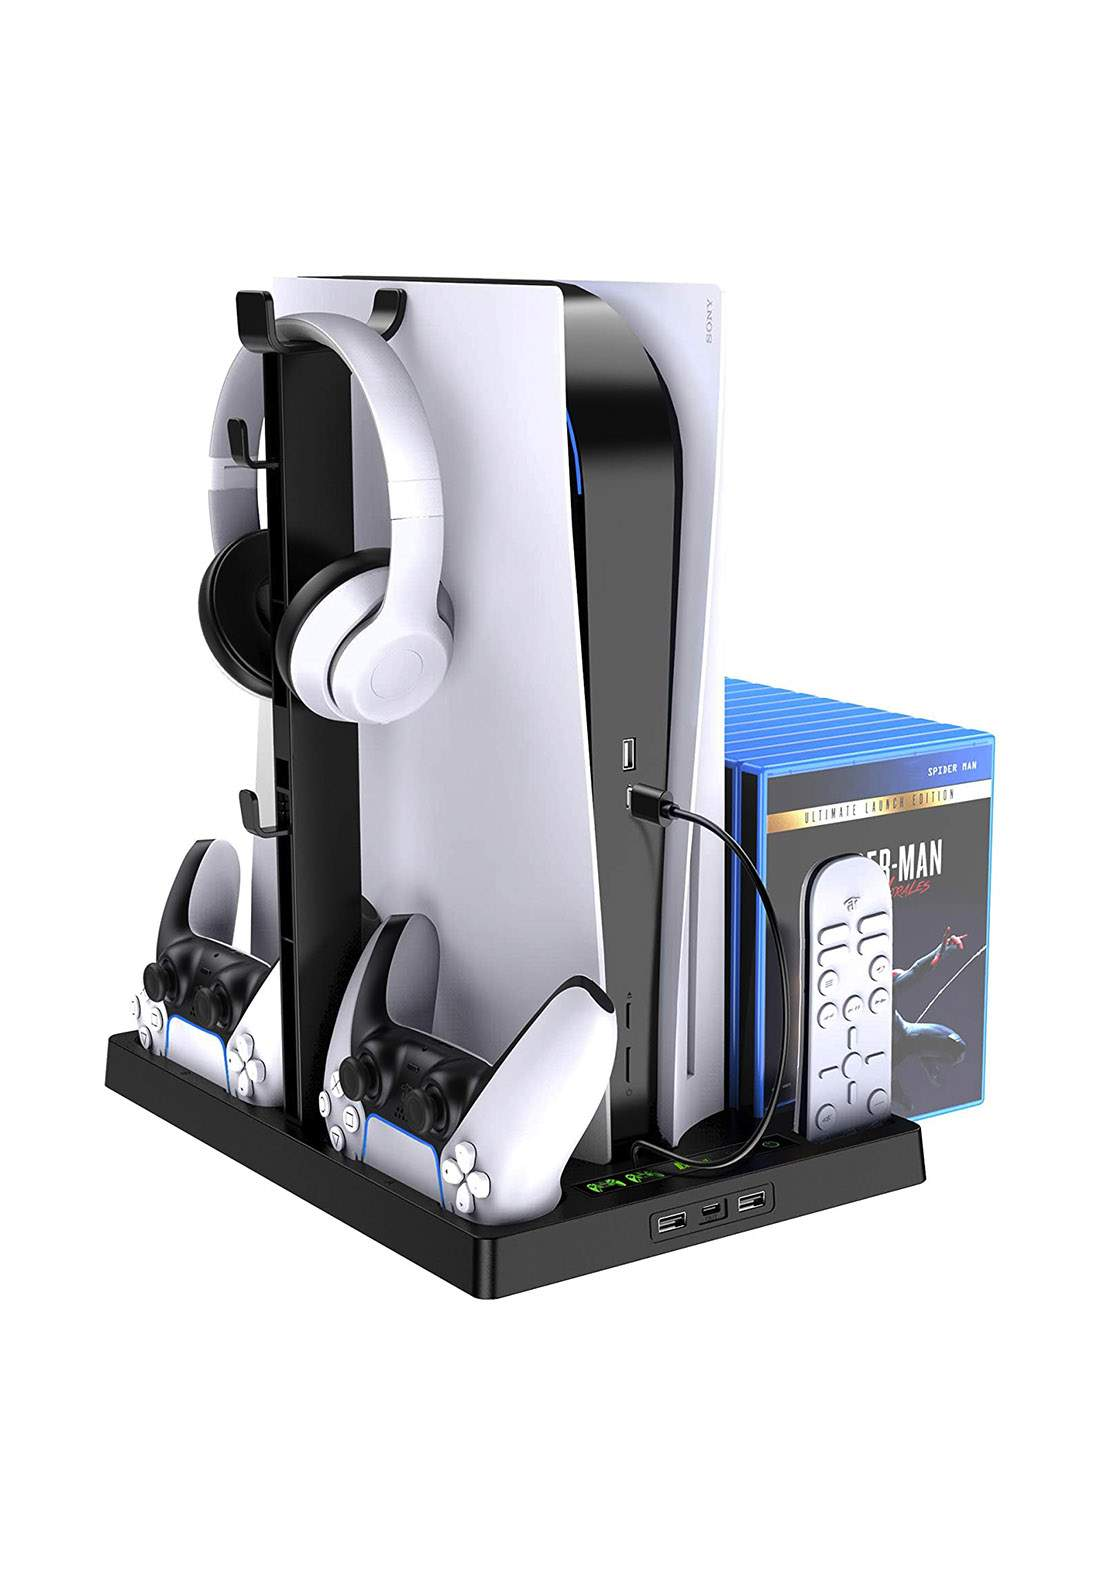 Dobe Multi-functional Cooling Stand and Charging for Playstation 5 ستاند مبرد